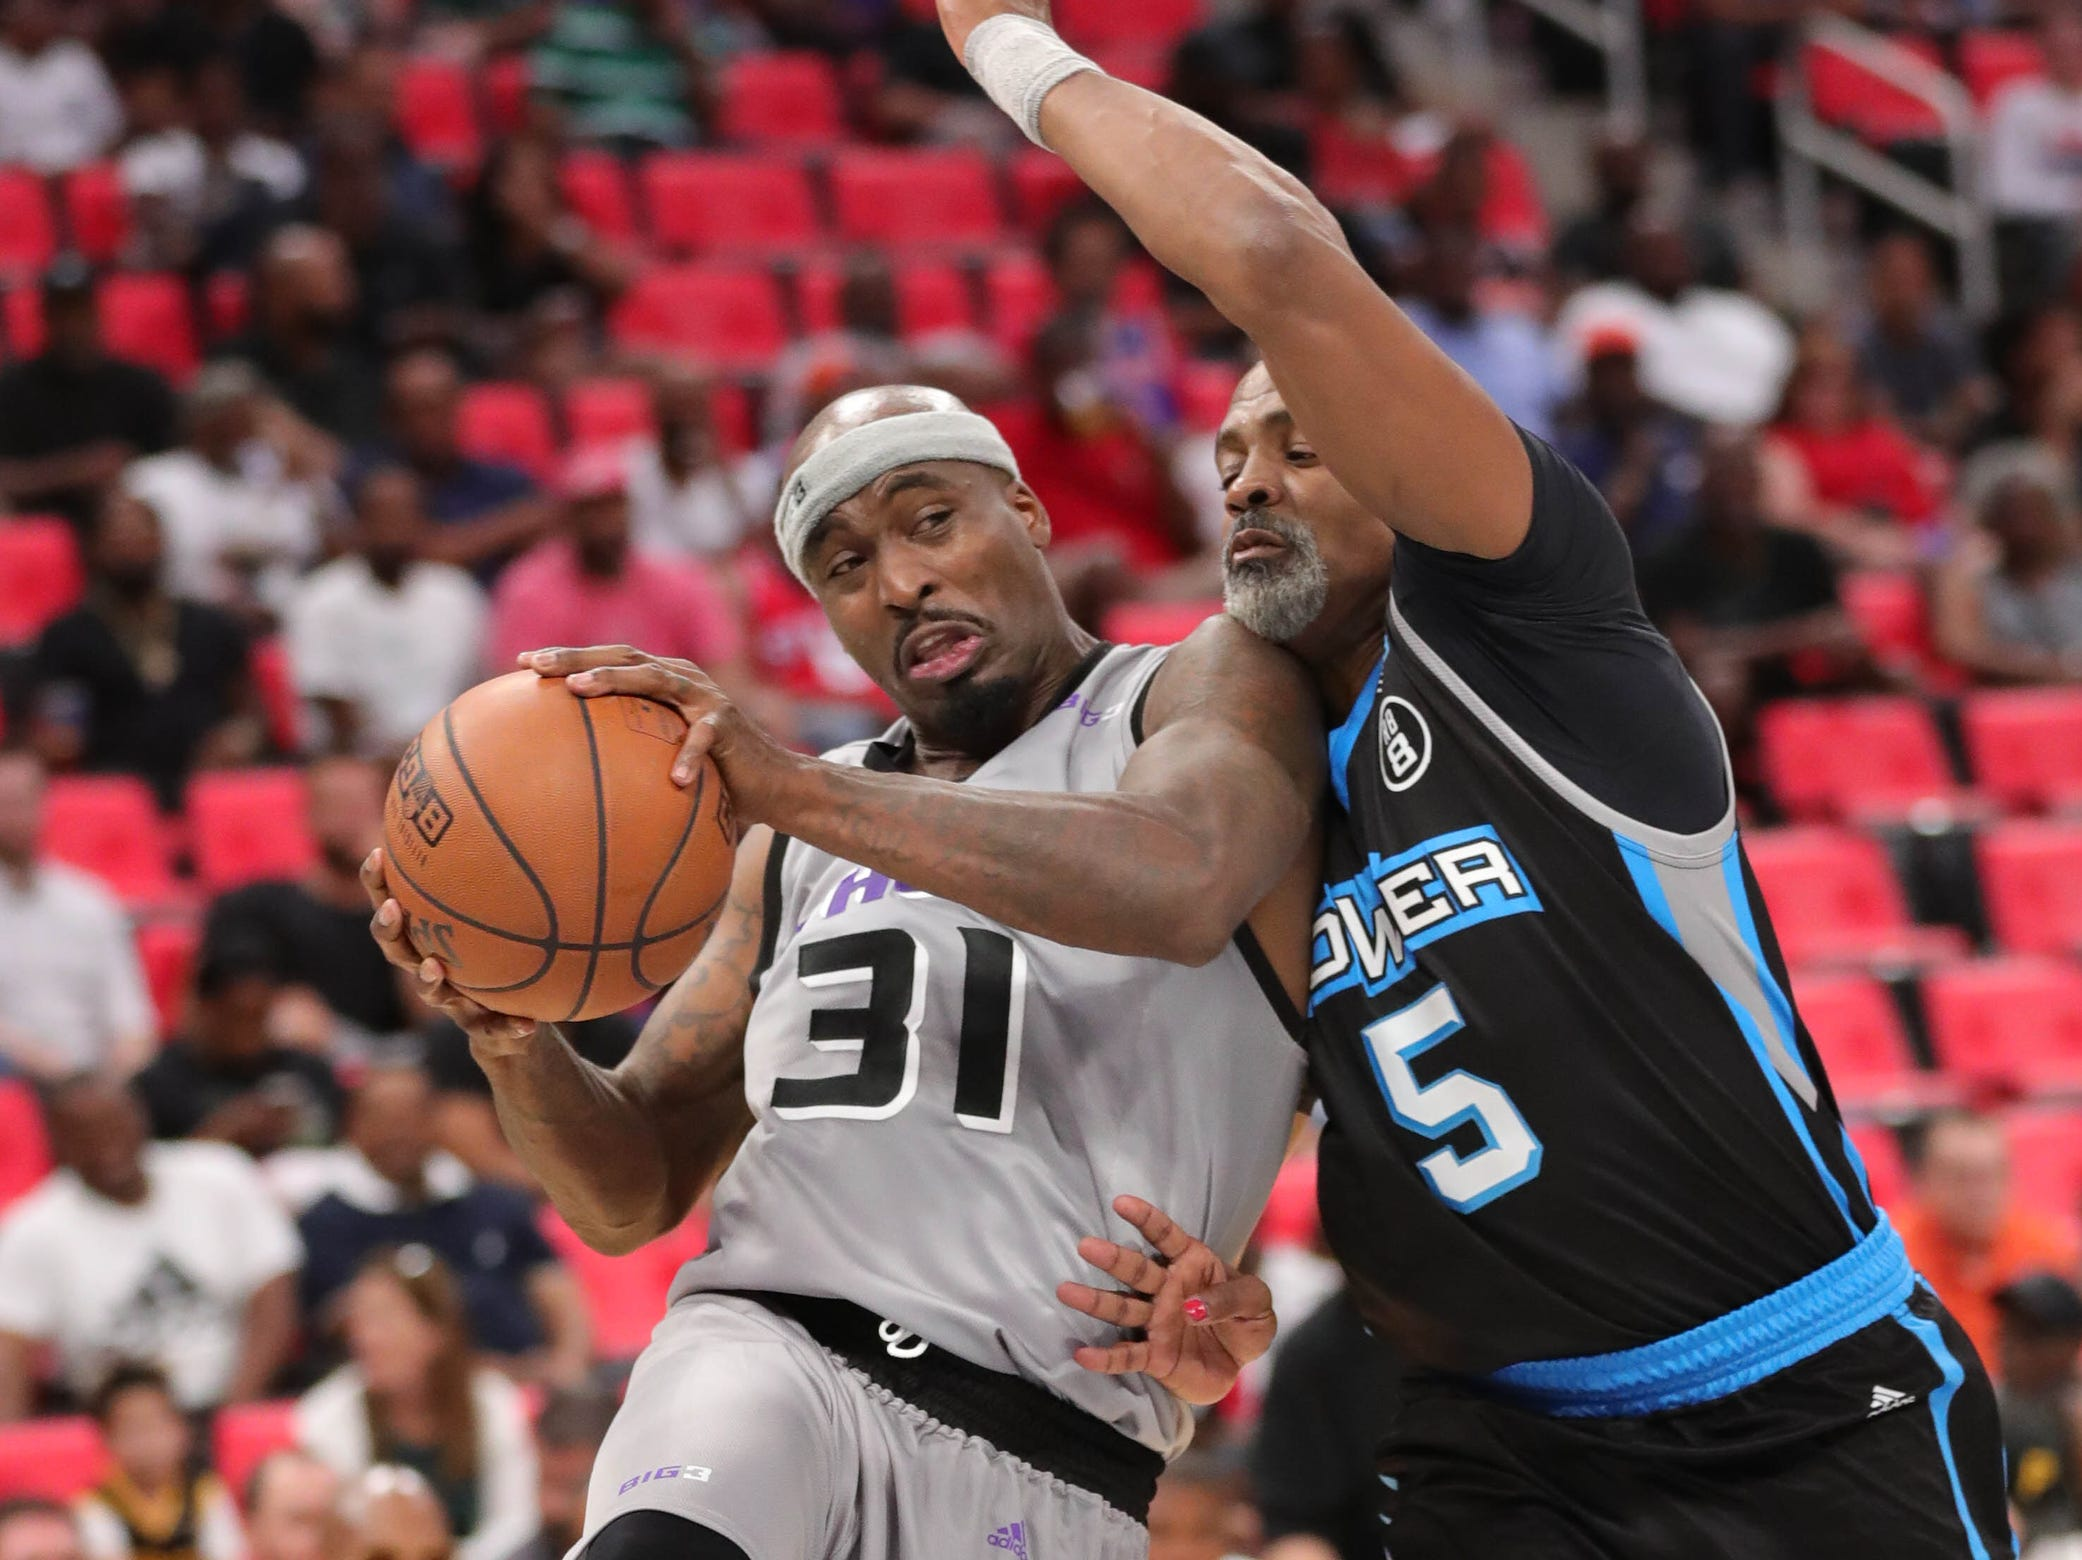 Ghost's Ricky Davis drives against Power's Cuttino Mobley during BIG3 action on Friday, July 13, 2018 at Little Caesars Arena in Detroit.